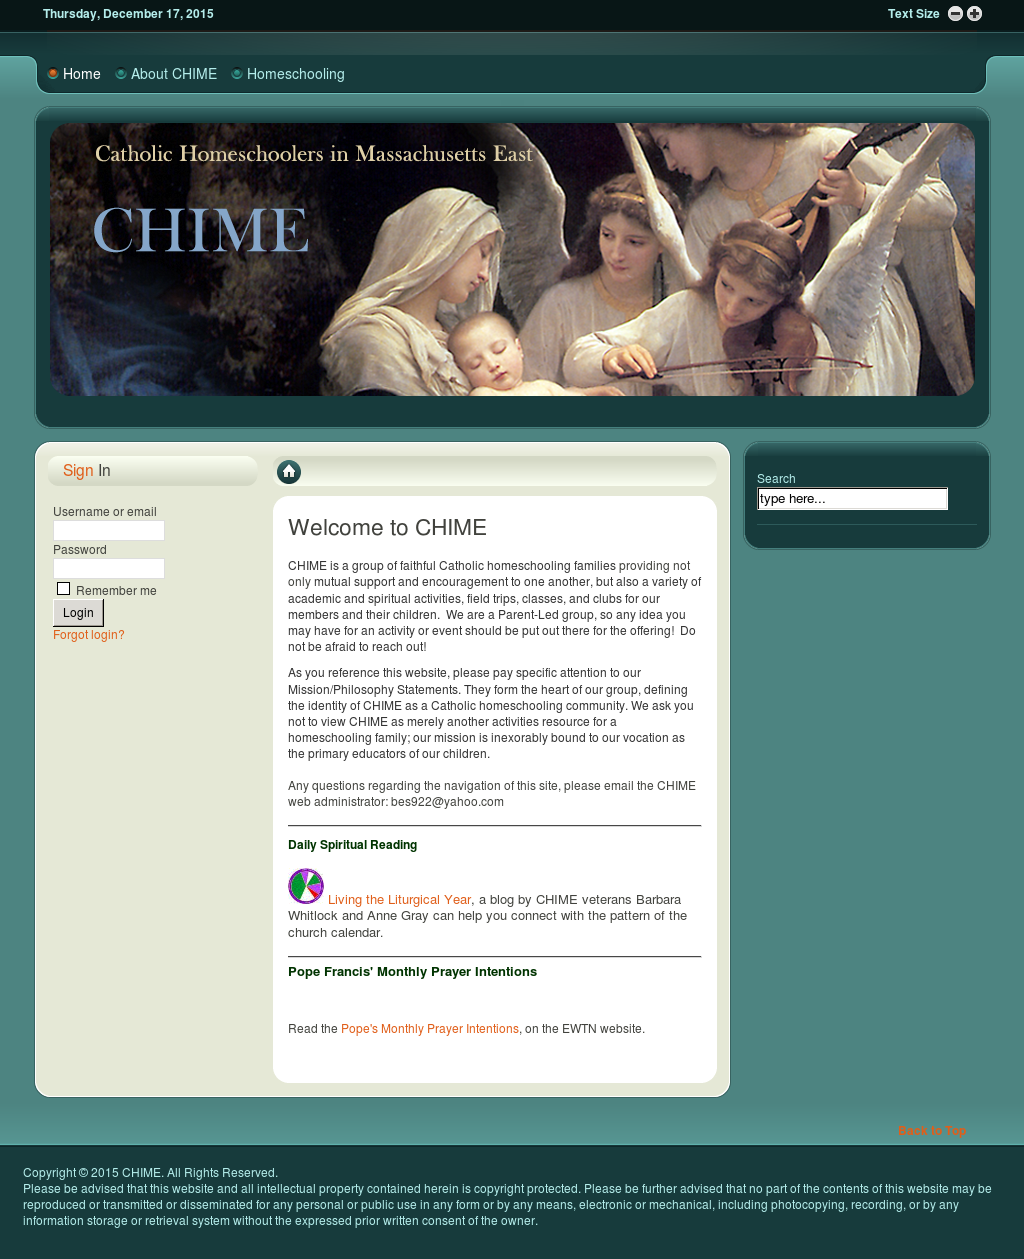 Chimehomeschool Competitors, Revenue and Employees - Owler